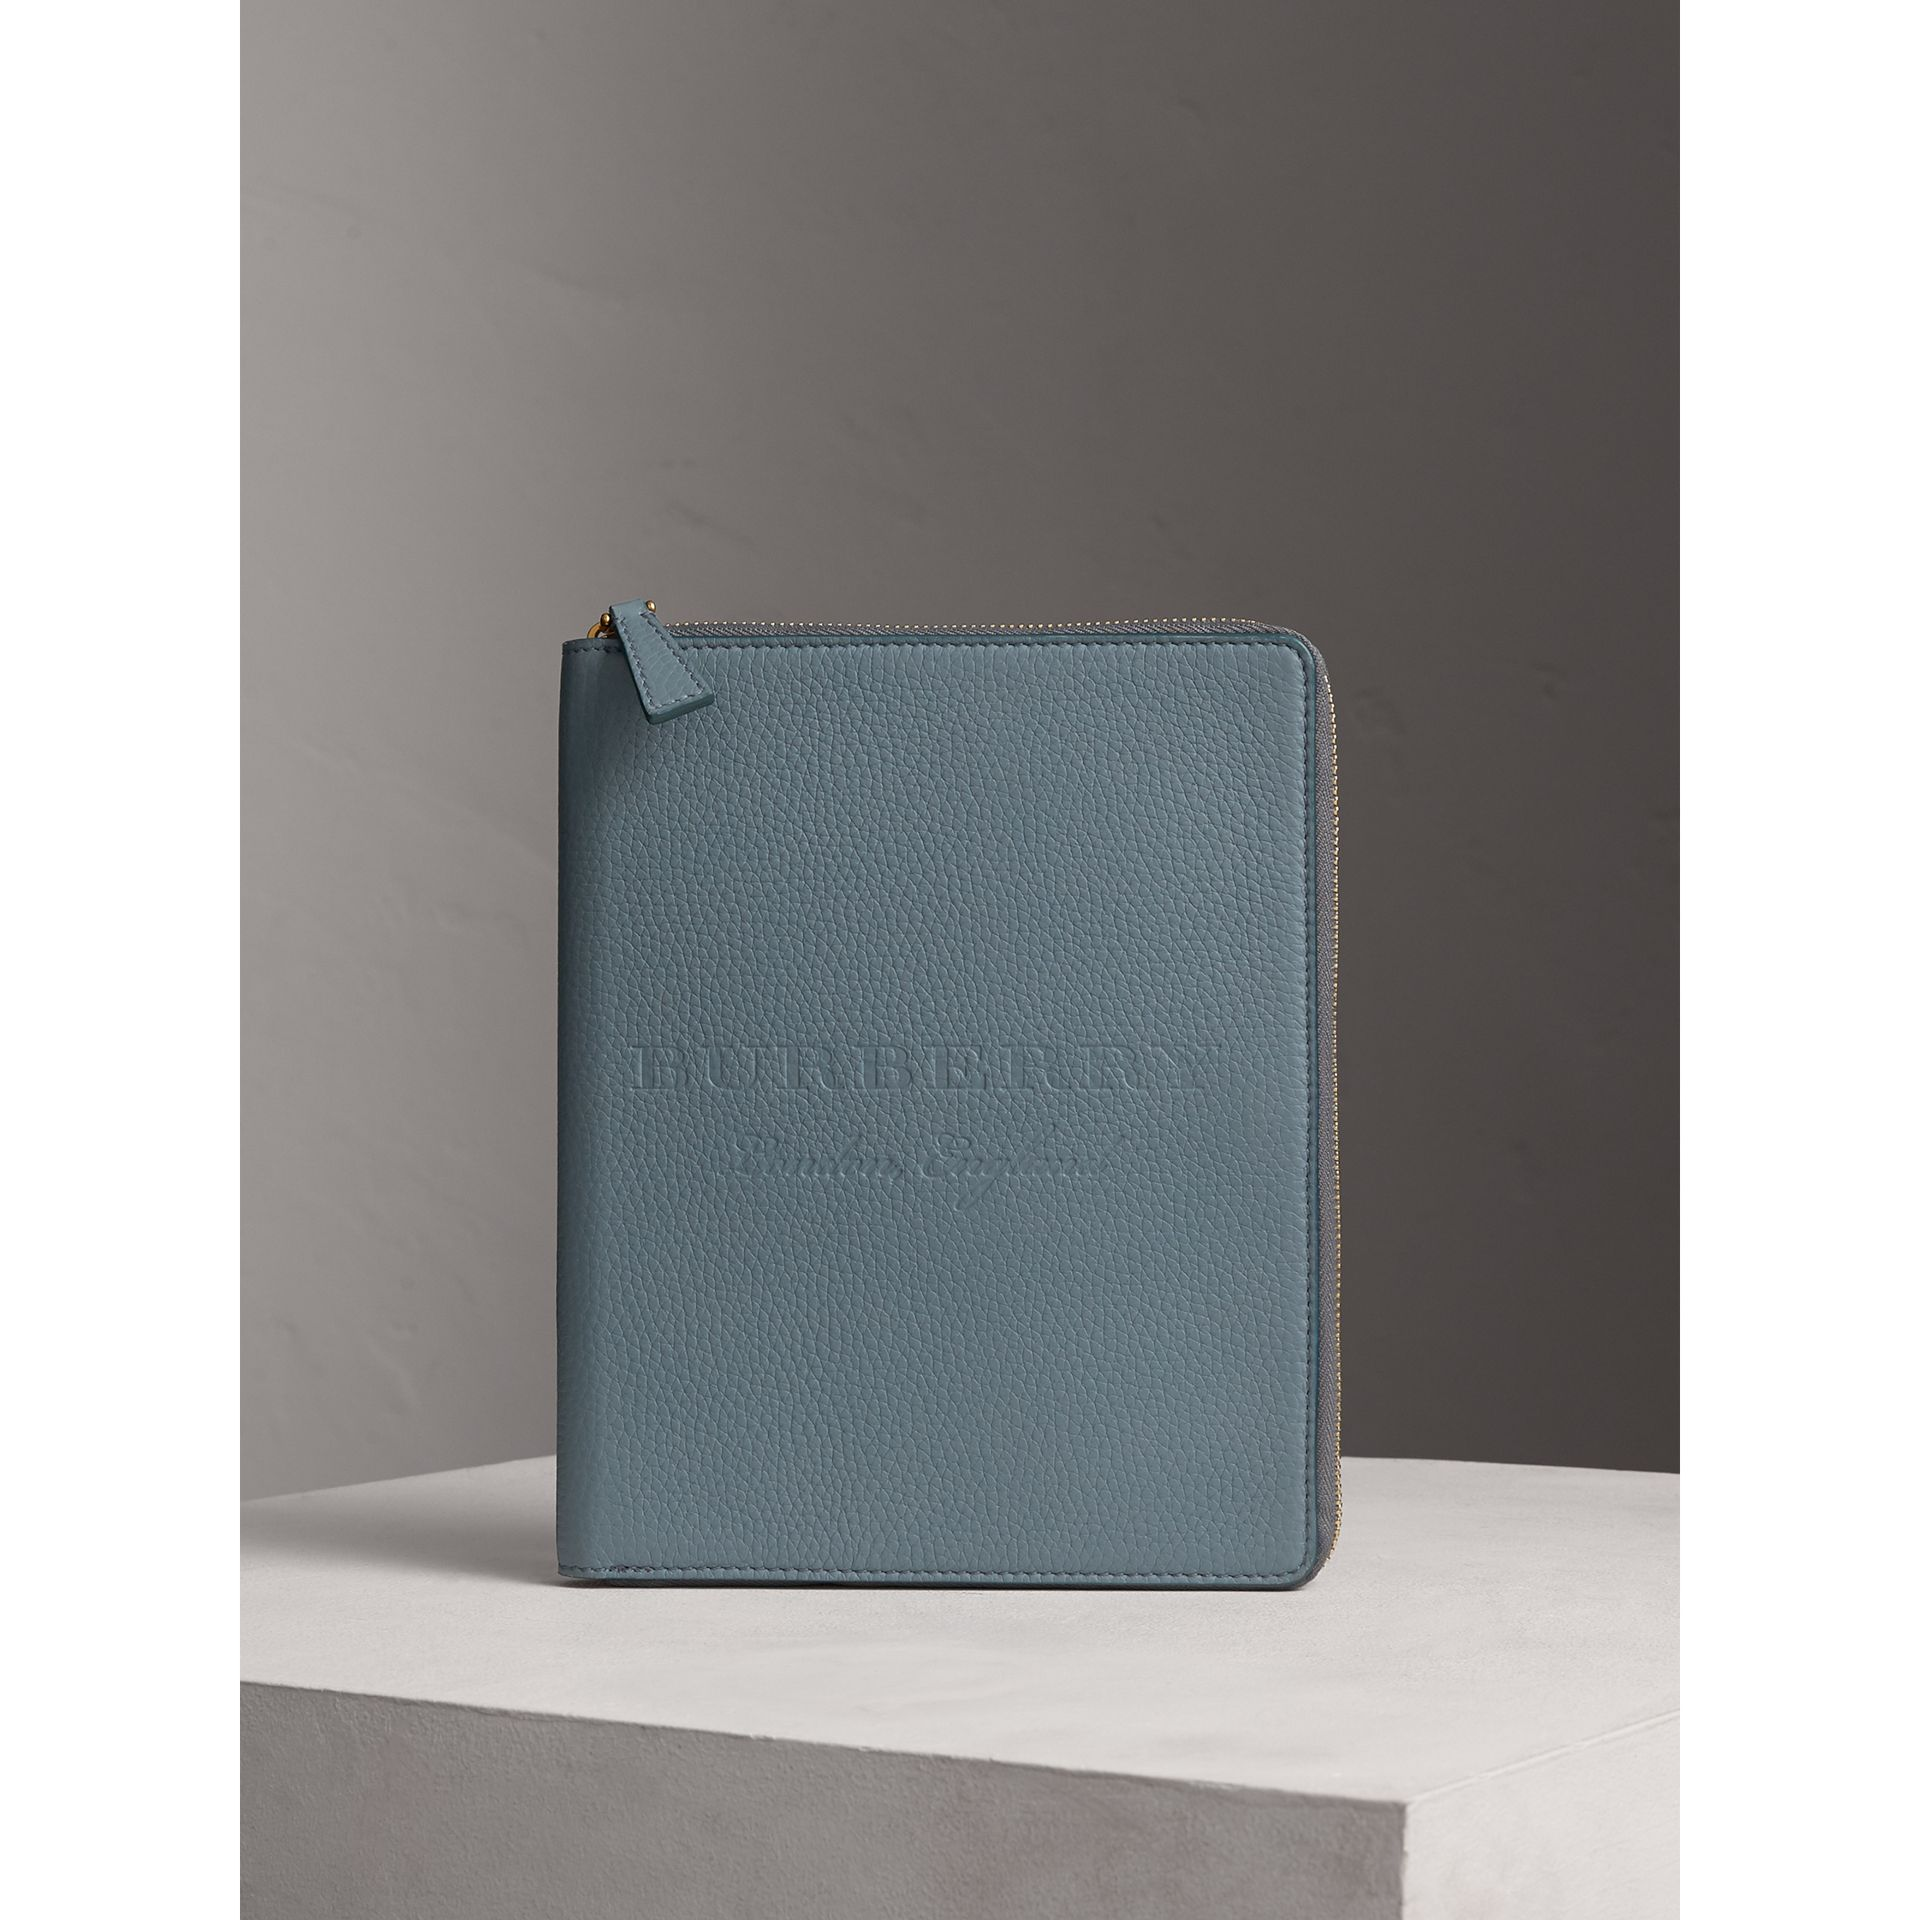 Embossed Leather Ziparound A5 Notebook Case in Dusty Teal Blue | Burberry Singapore - gallery image 4